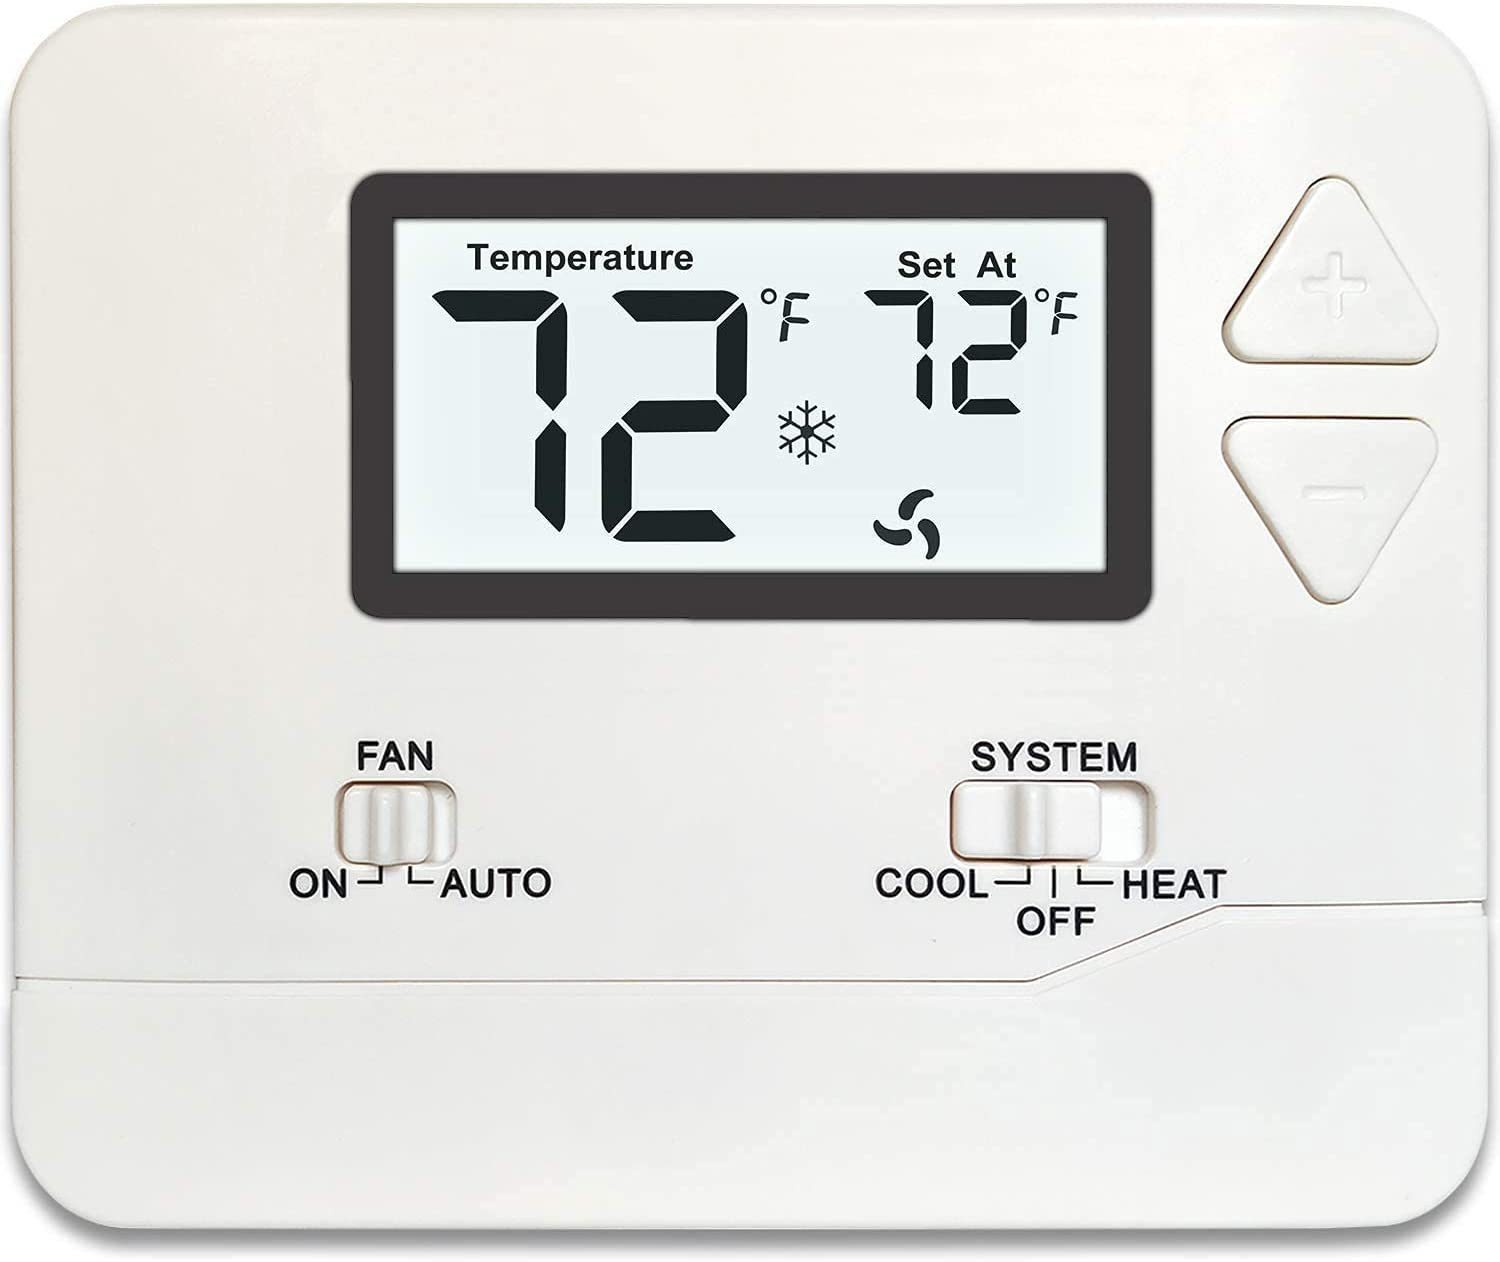 Non-Programmable Thermostat for Home 1 Heat / 1 Cool (White)